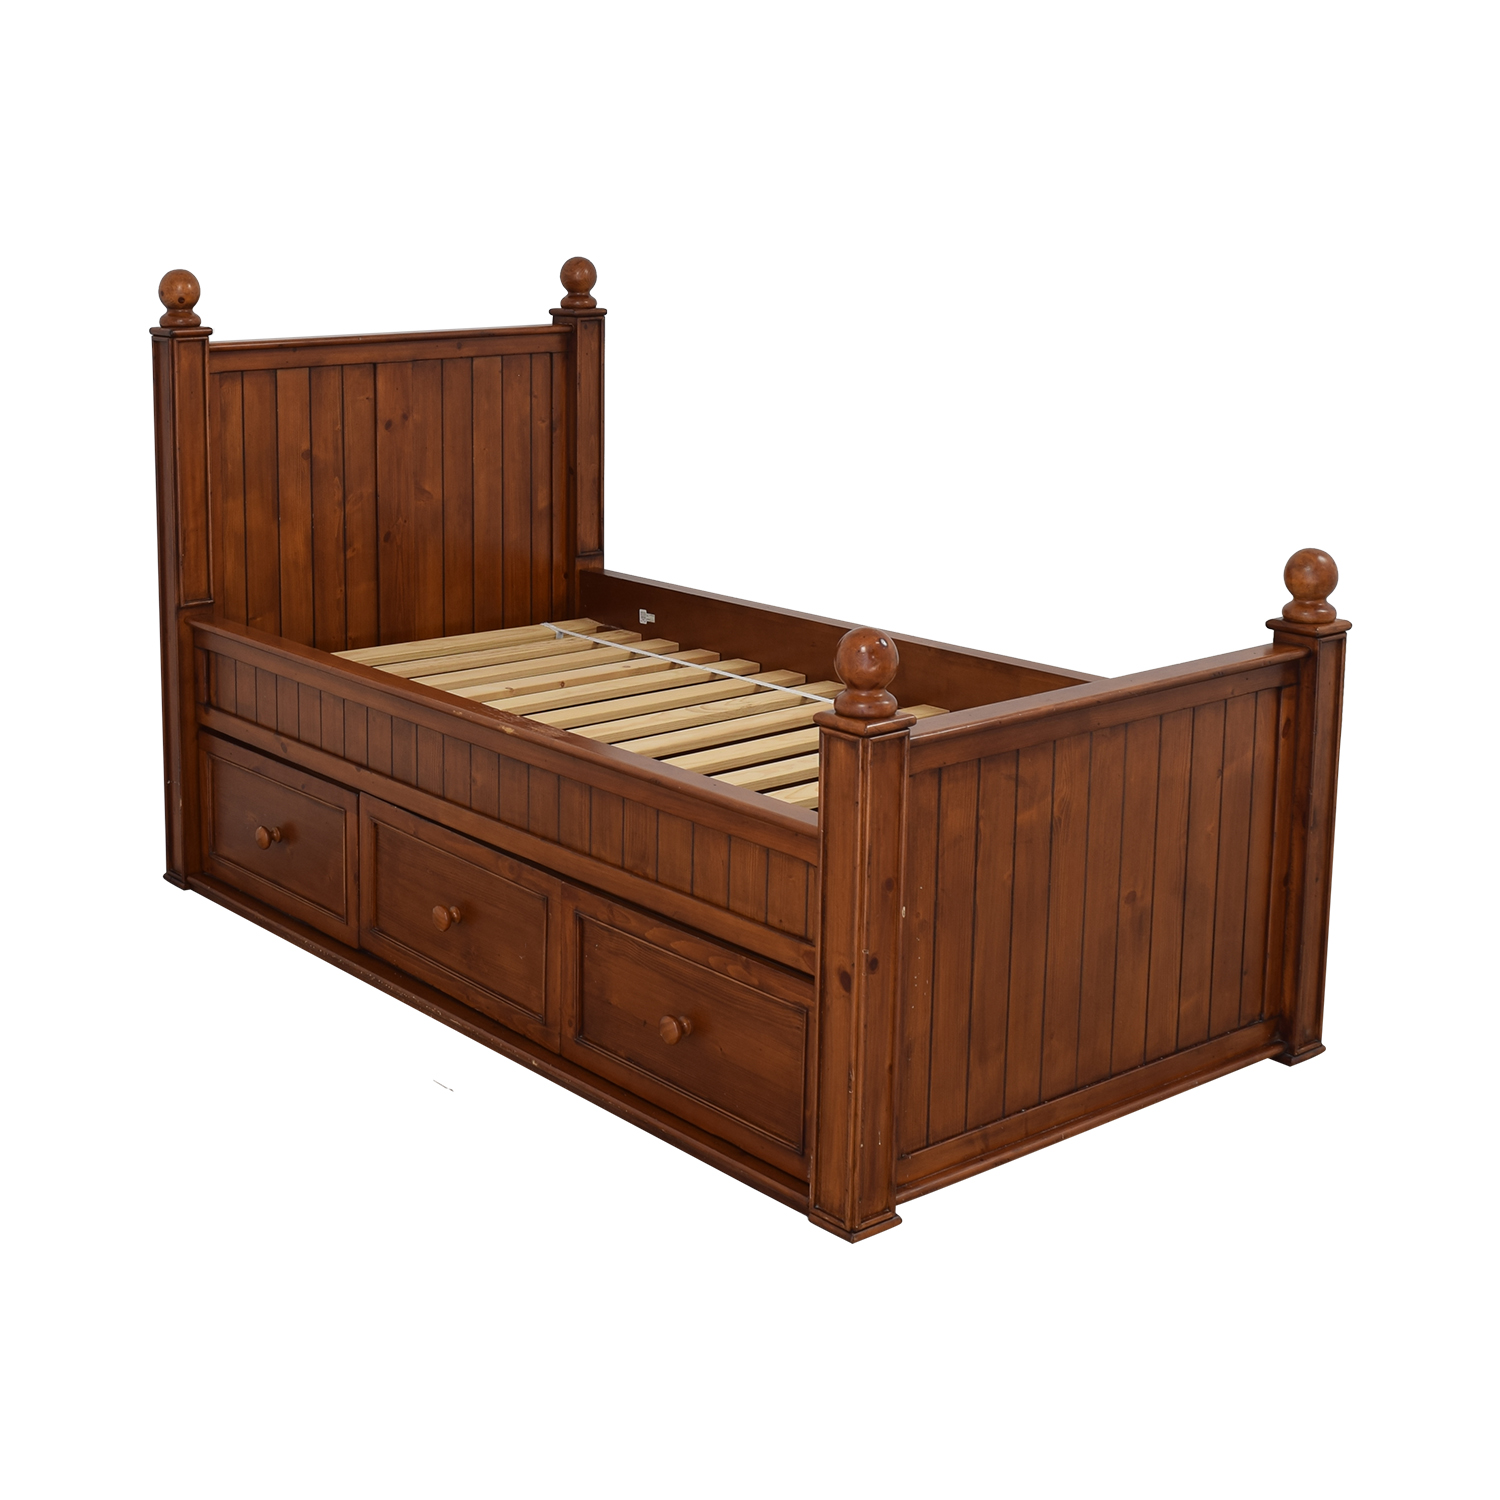 89 Off Pottery Barn Kids Pottery Barn Kids Twin Bed With Storage Beds